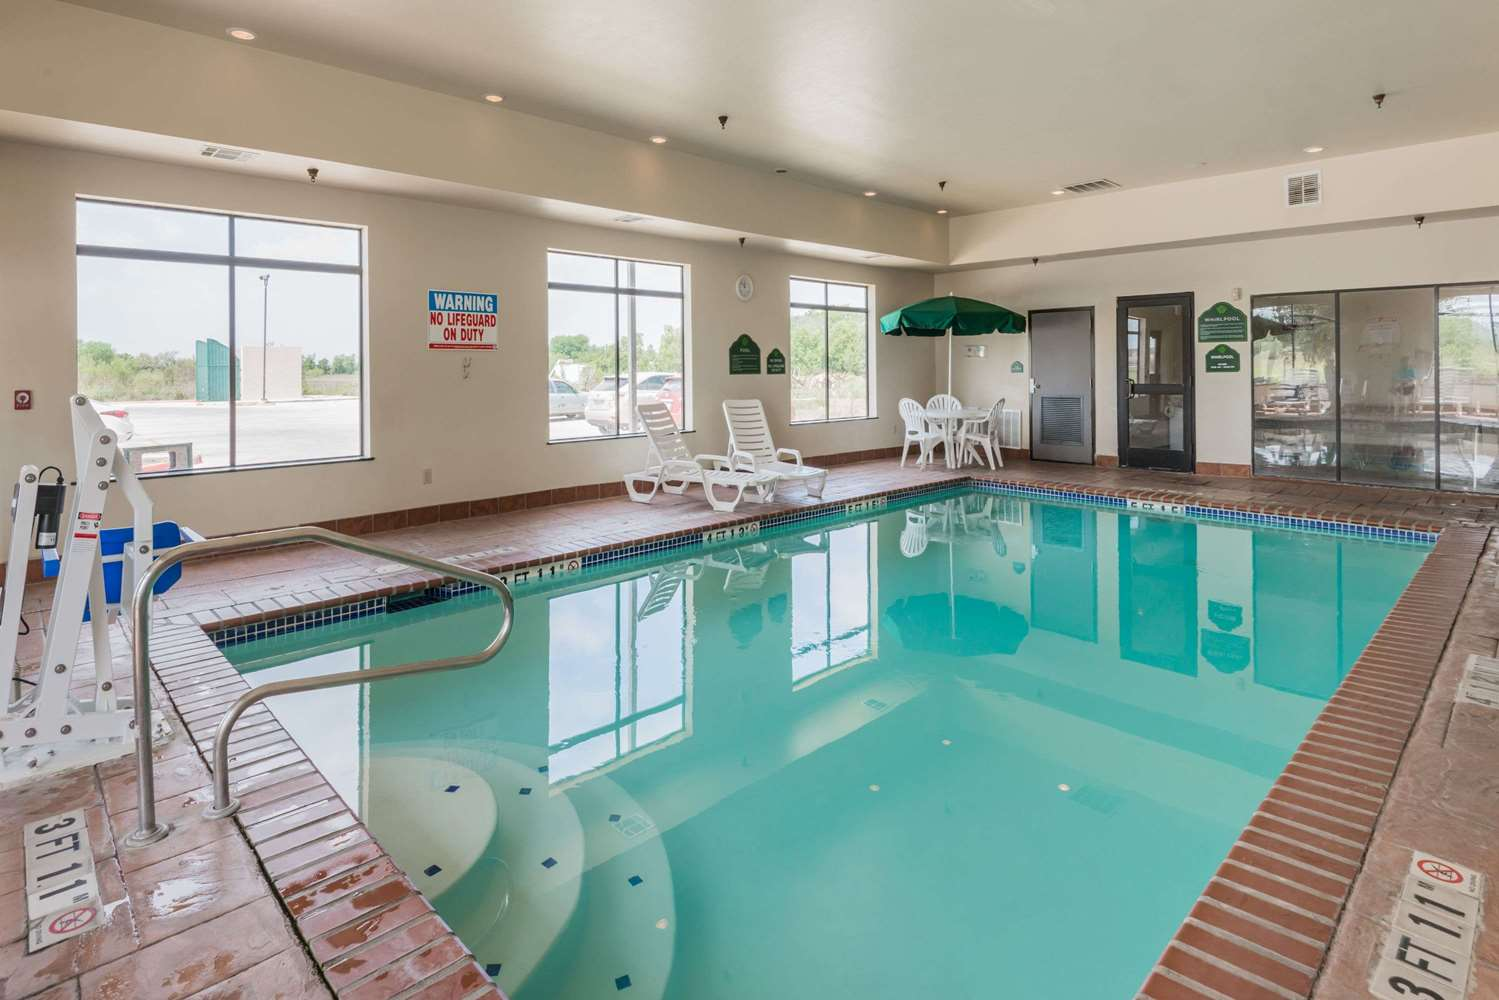 Wingate By Wyndham Hotel New Braunfels Tx See Discounts